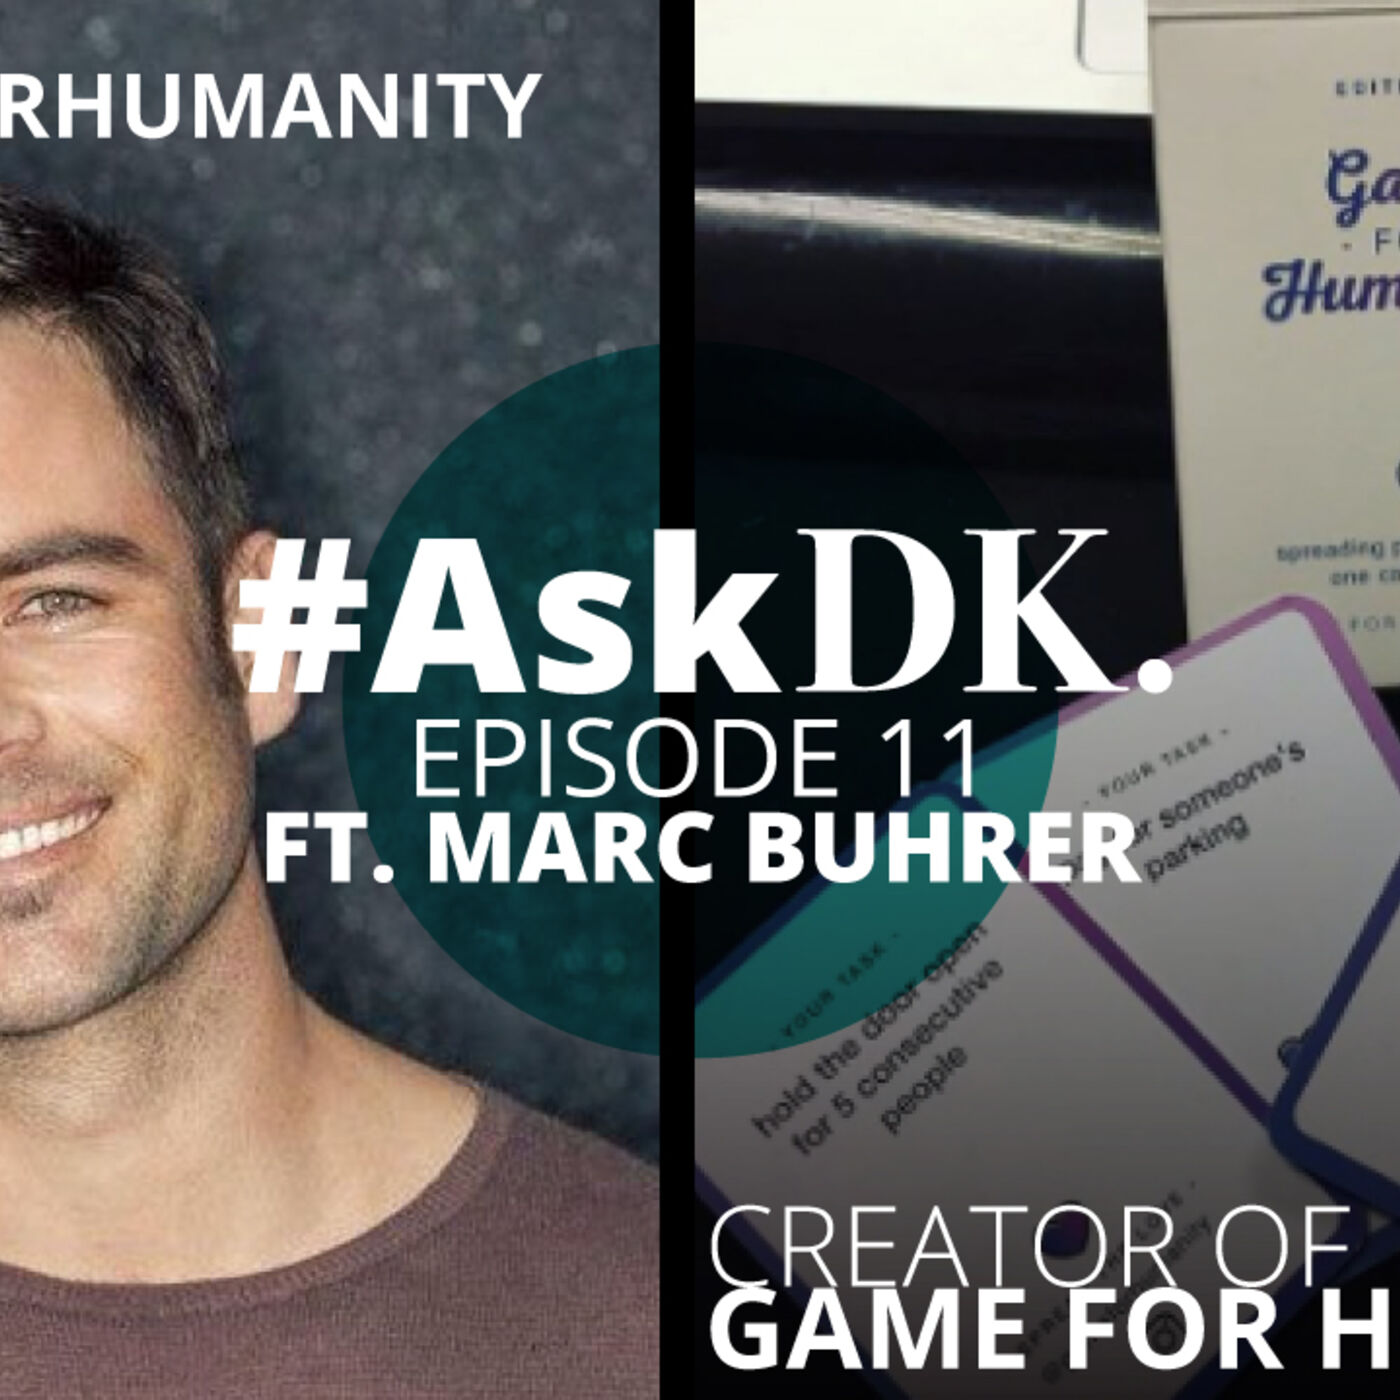 S02 E02 | Social Network, Team Building and Project Decisions | Marc Buhrer